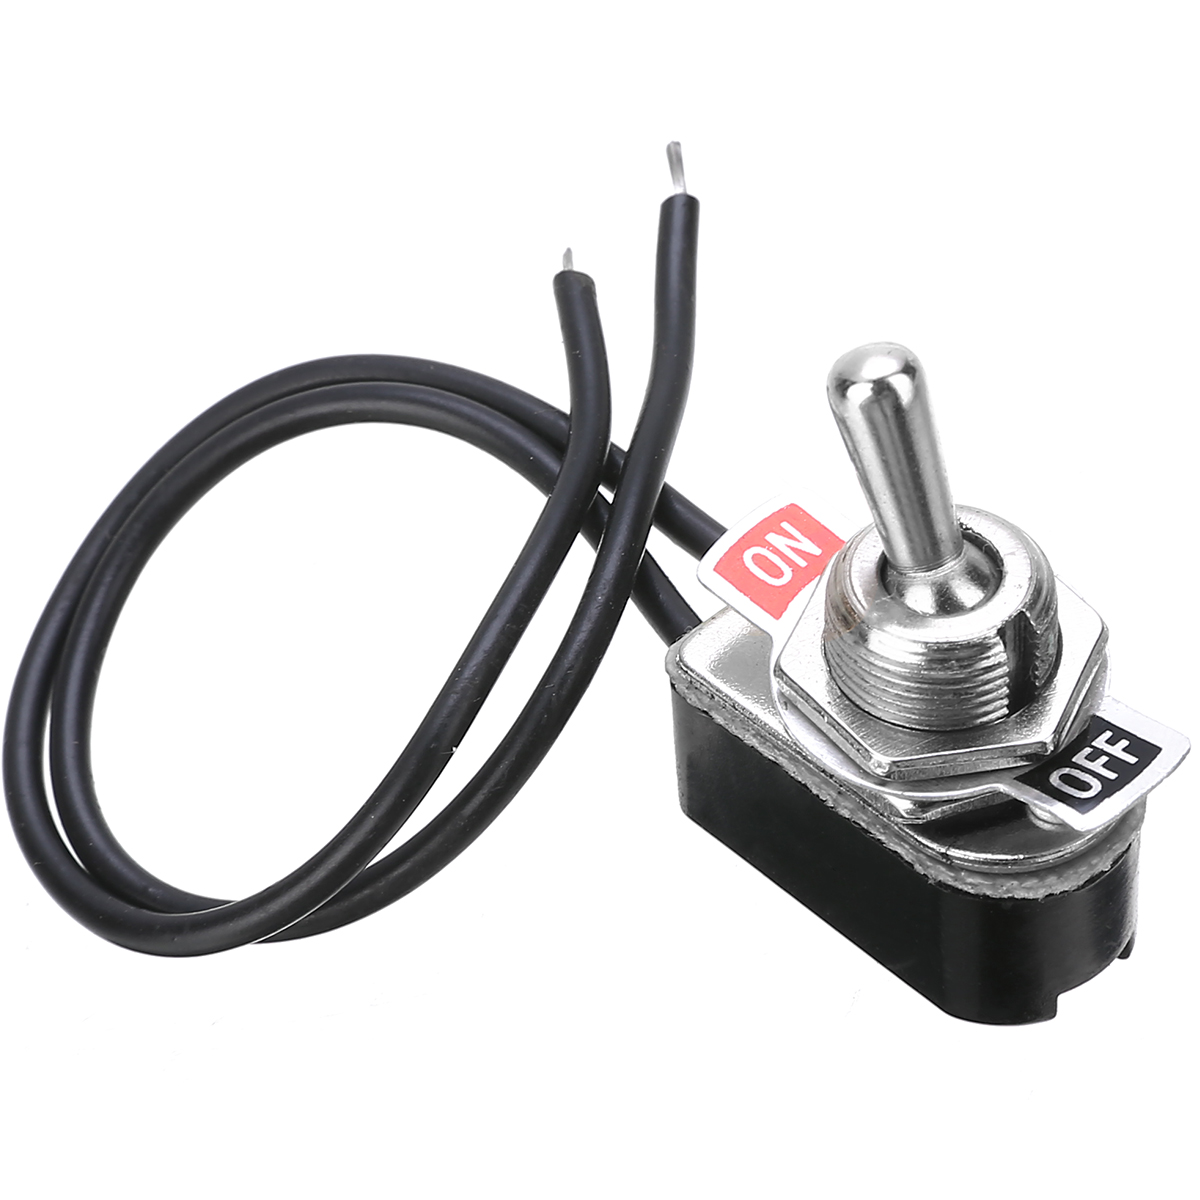 AC 250V 6A On Off Prewired Standard Toggle Switch With Wire Cable KNS 1 SPST Contacts Switch Electrical Equipment in Switches from Lights Lighting